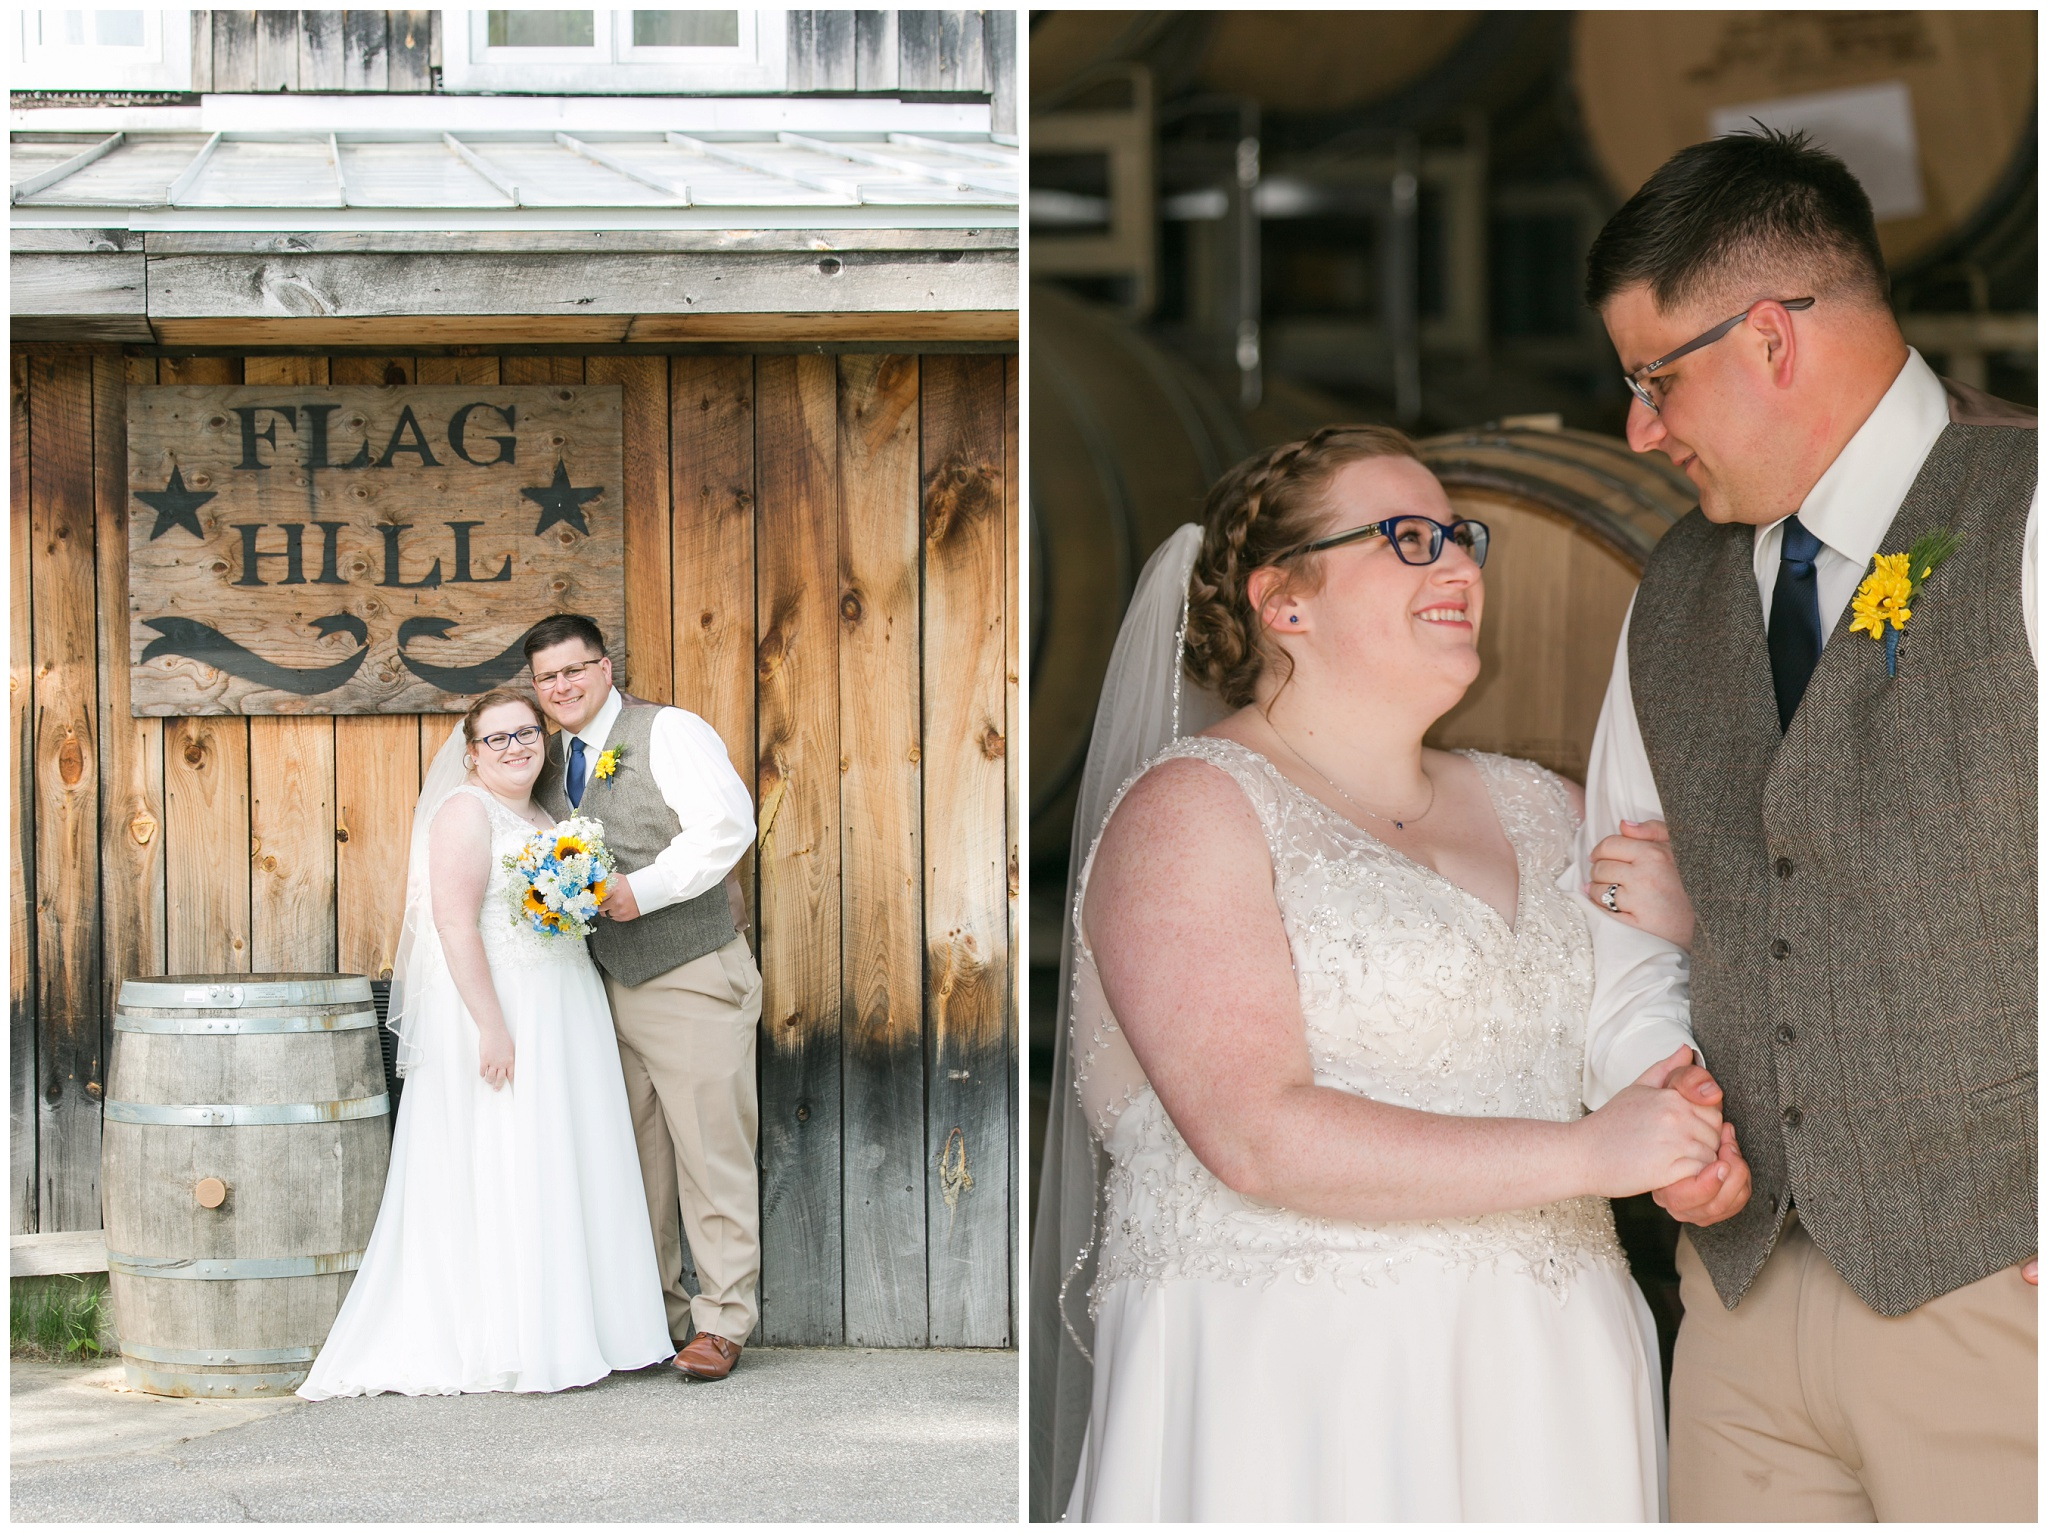 Amy-Brown-Photography-Seacoast-NH-New-Hampshire-Outdoor-Wedding-Flag Hill-Distillery-And-Winery_0729.jpg